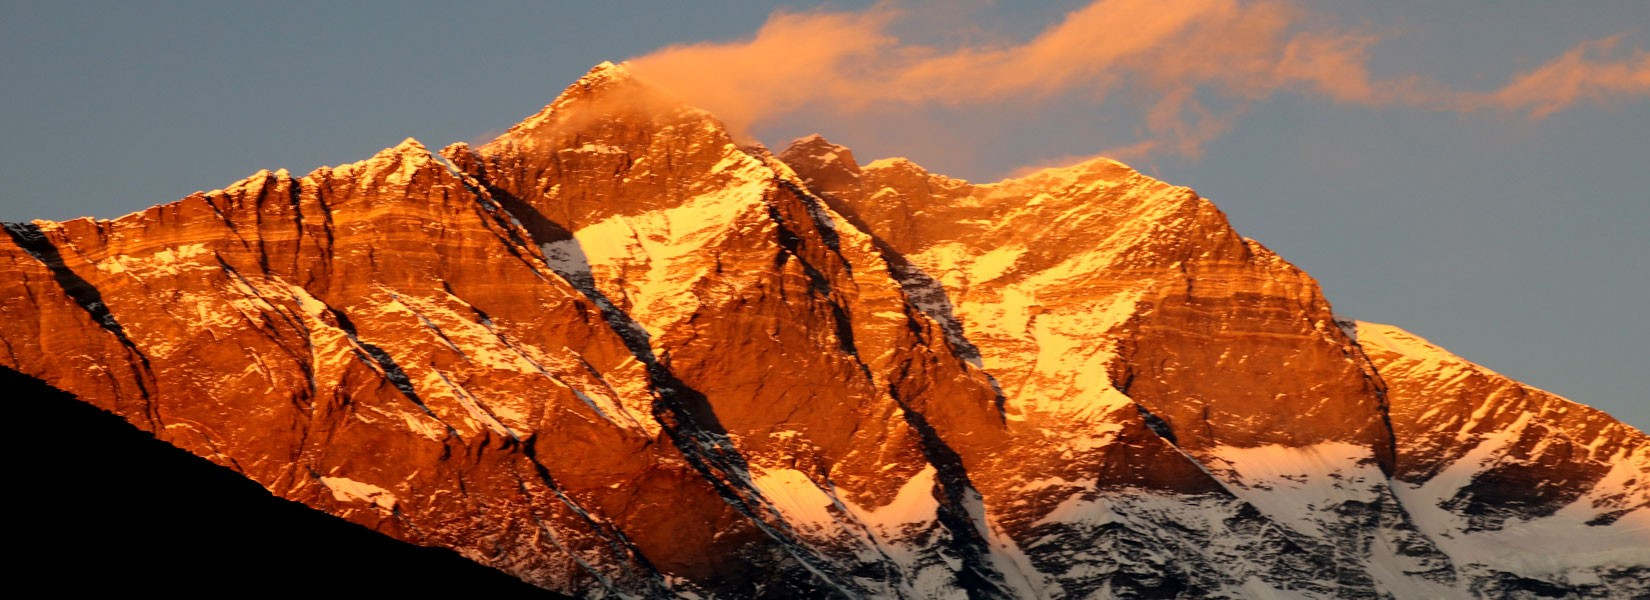 Mt. Lhotse in Nepal